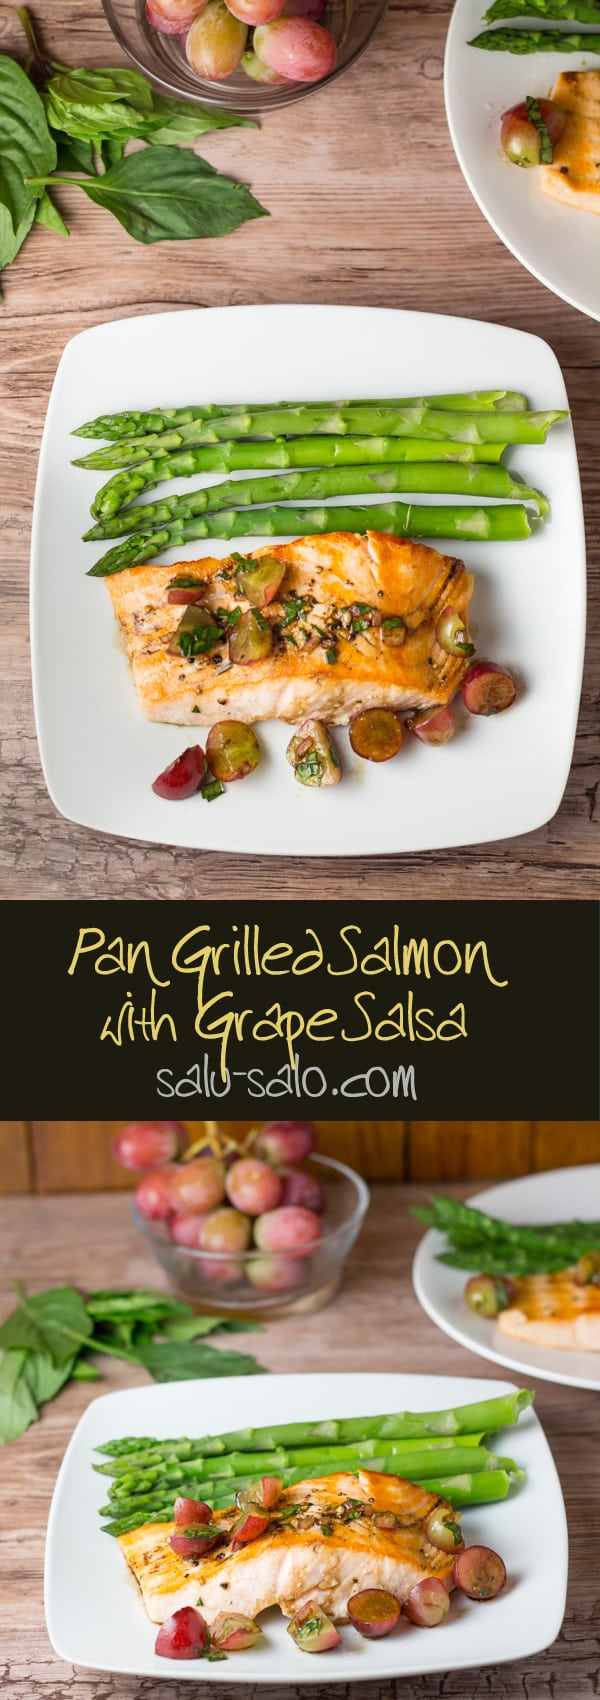 Pan Grilled Salmon with Grape Salsa